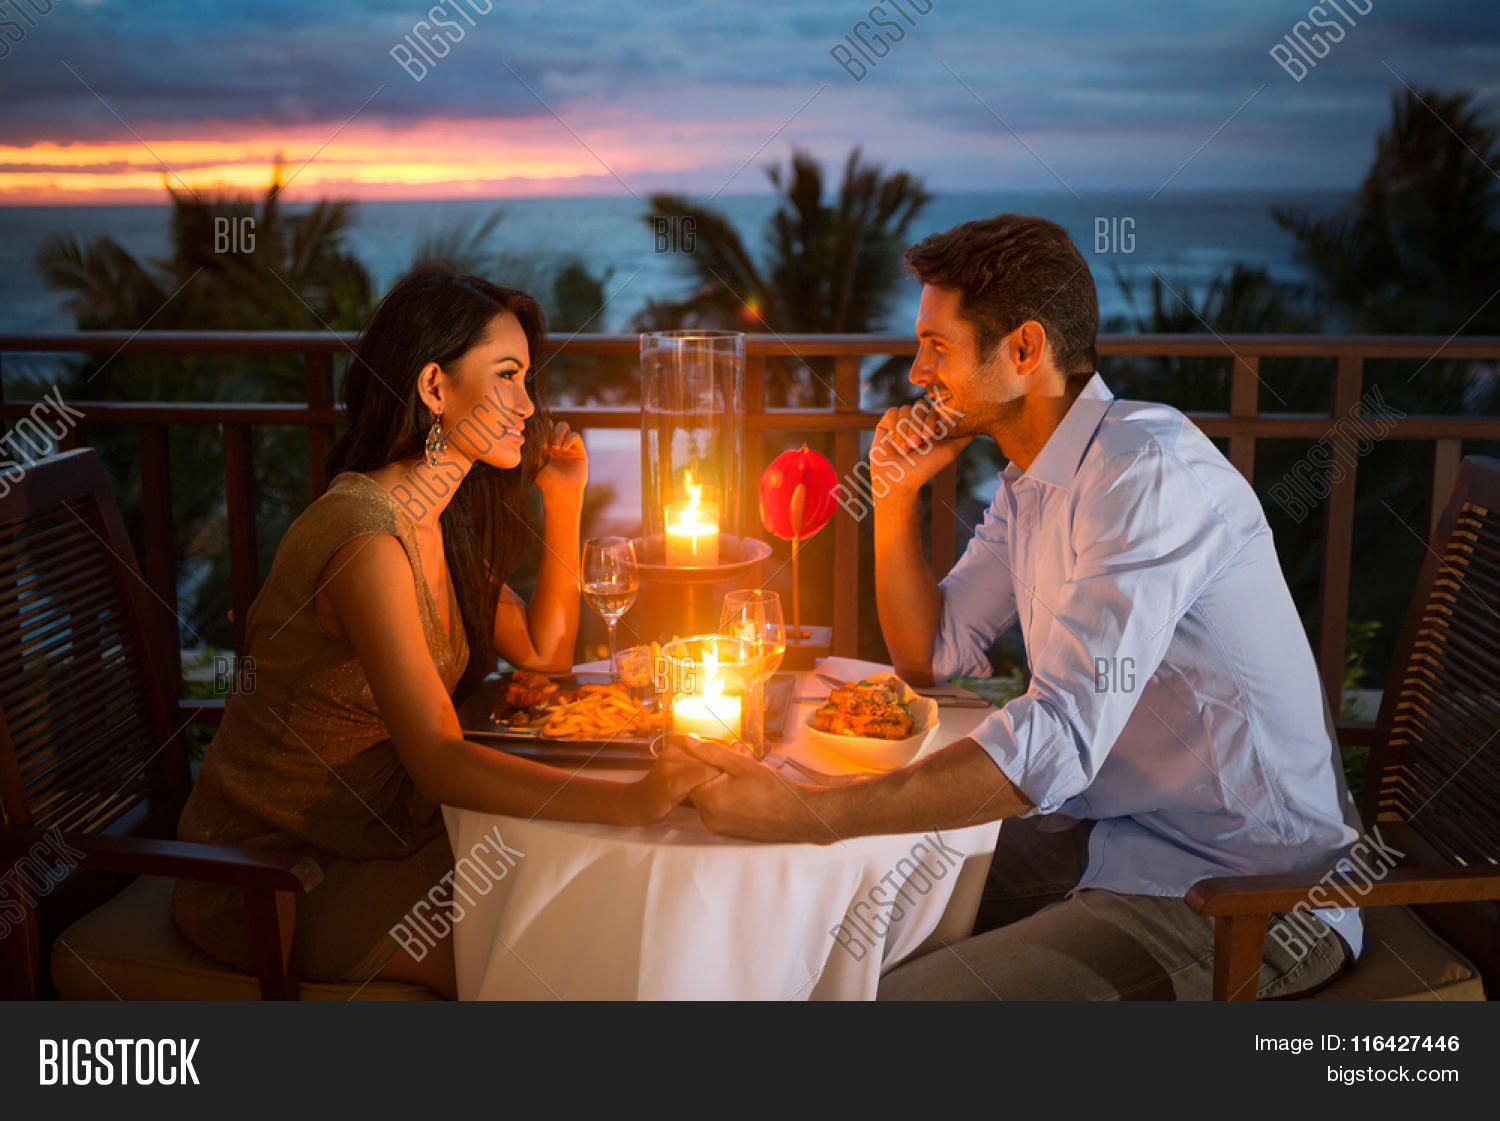 Romantic couple have dinner sunset image photo bigstock for Romantic getaway ideas for couples